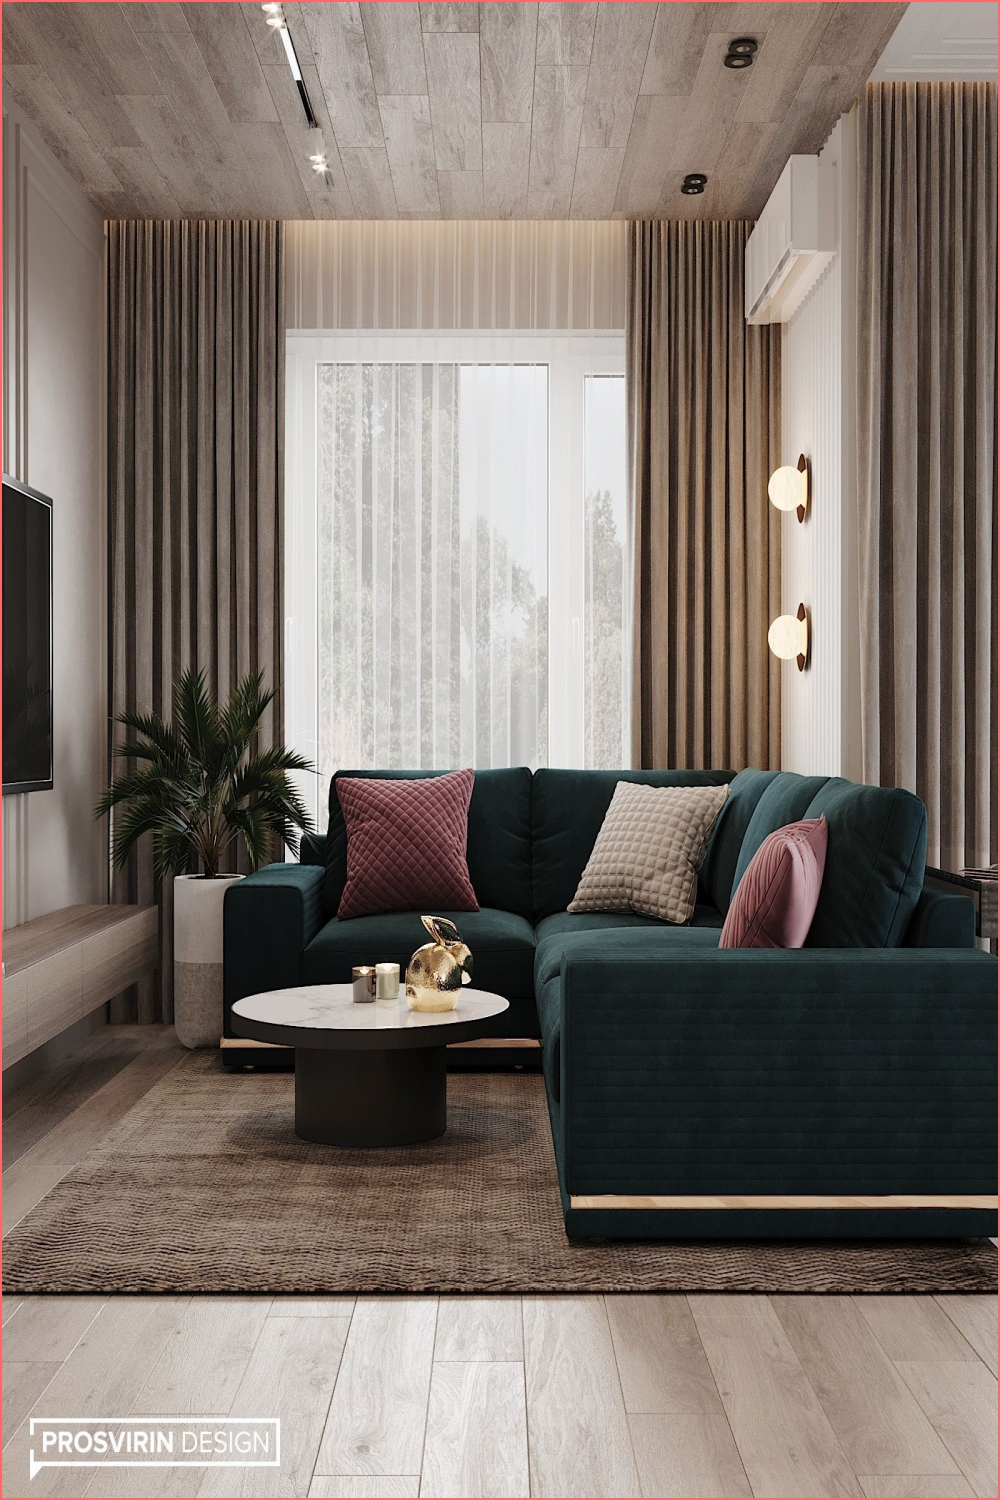 Furniture contemporary living designs contemporary living on modern contemporary interior design ideas on modern contemporary interior design ideas post on 2020-11-24 16:45:24